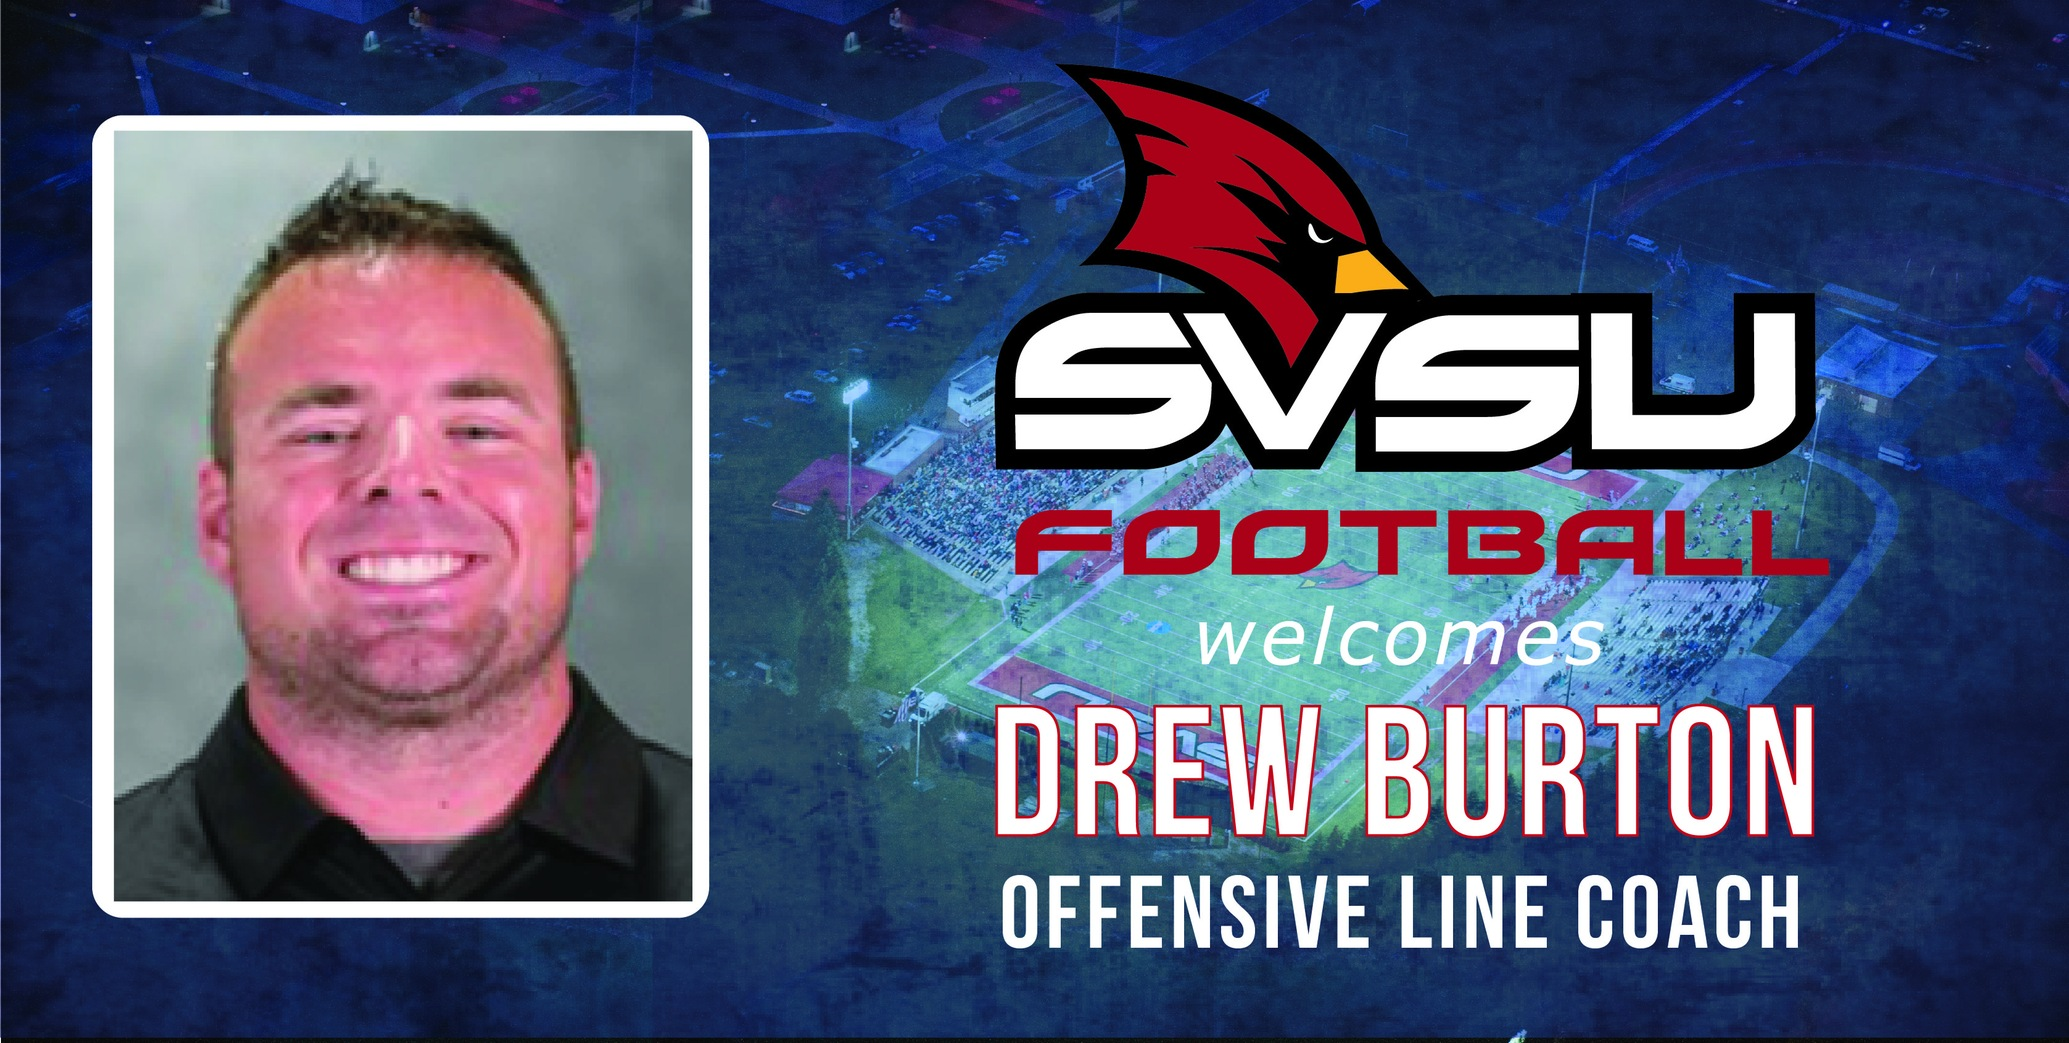 Cardinal Football announces the addition of Drew Burton as Offensive Line Coach